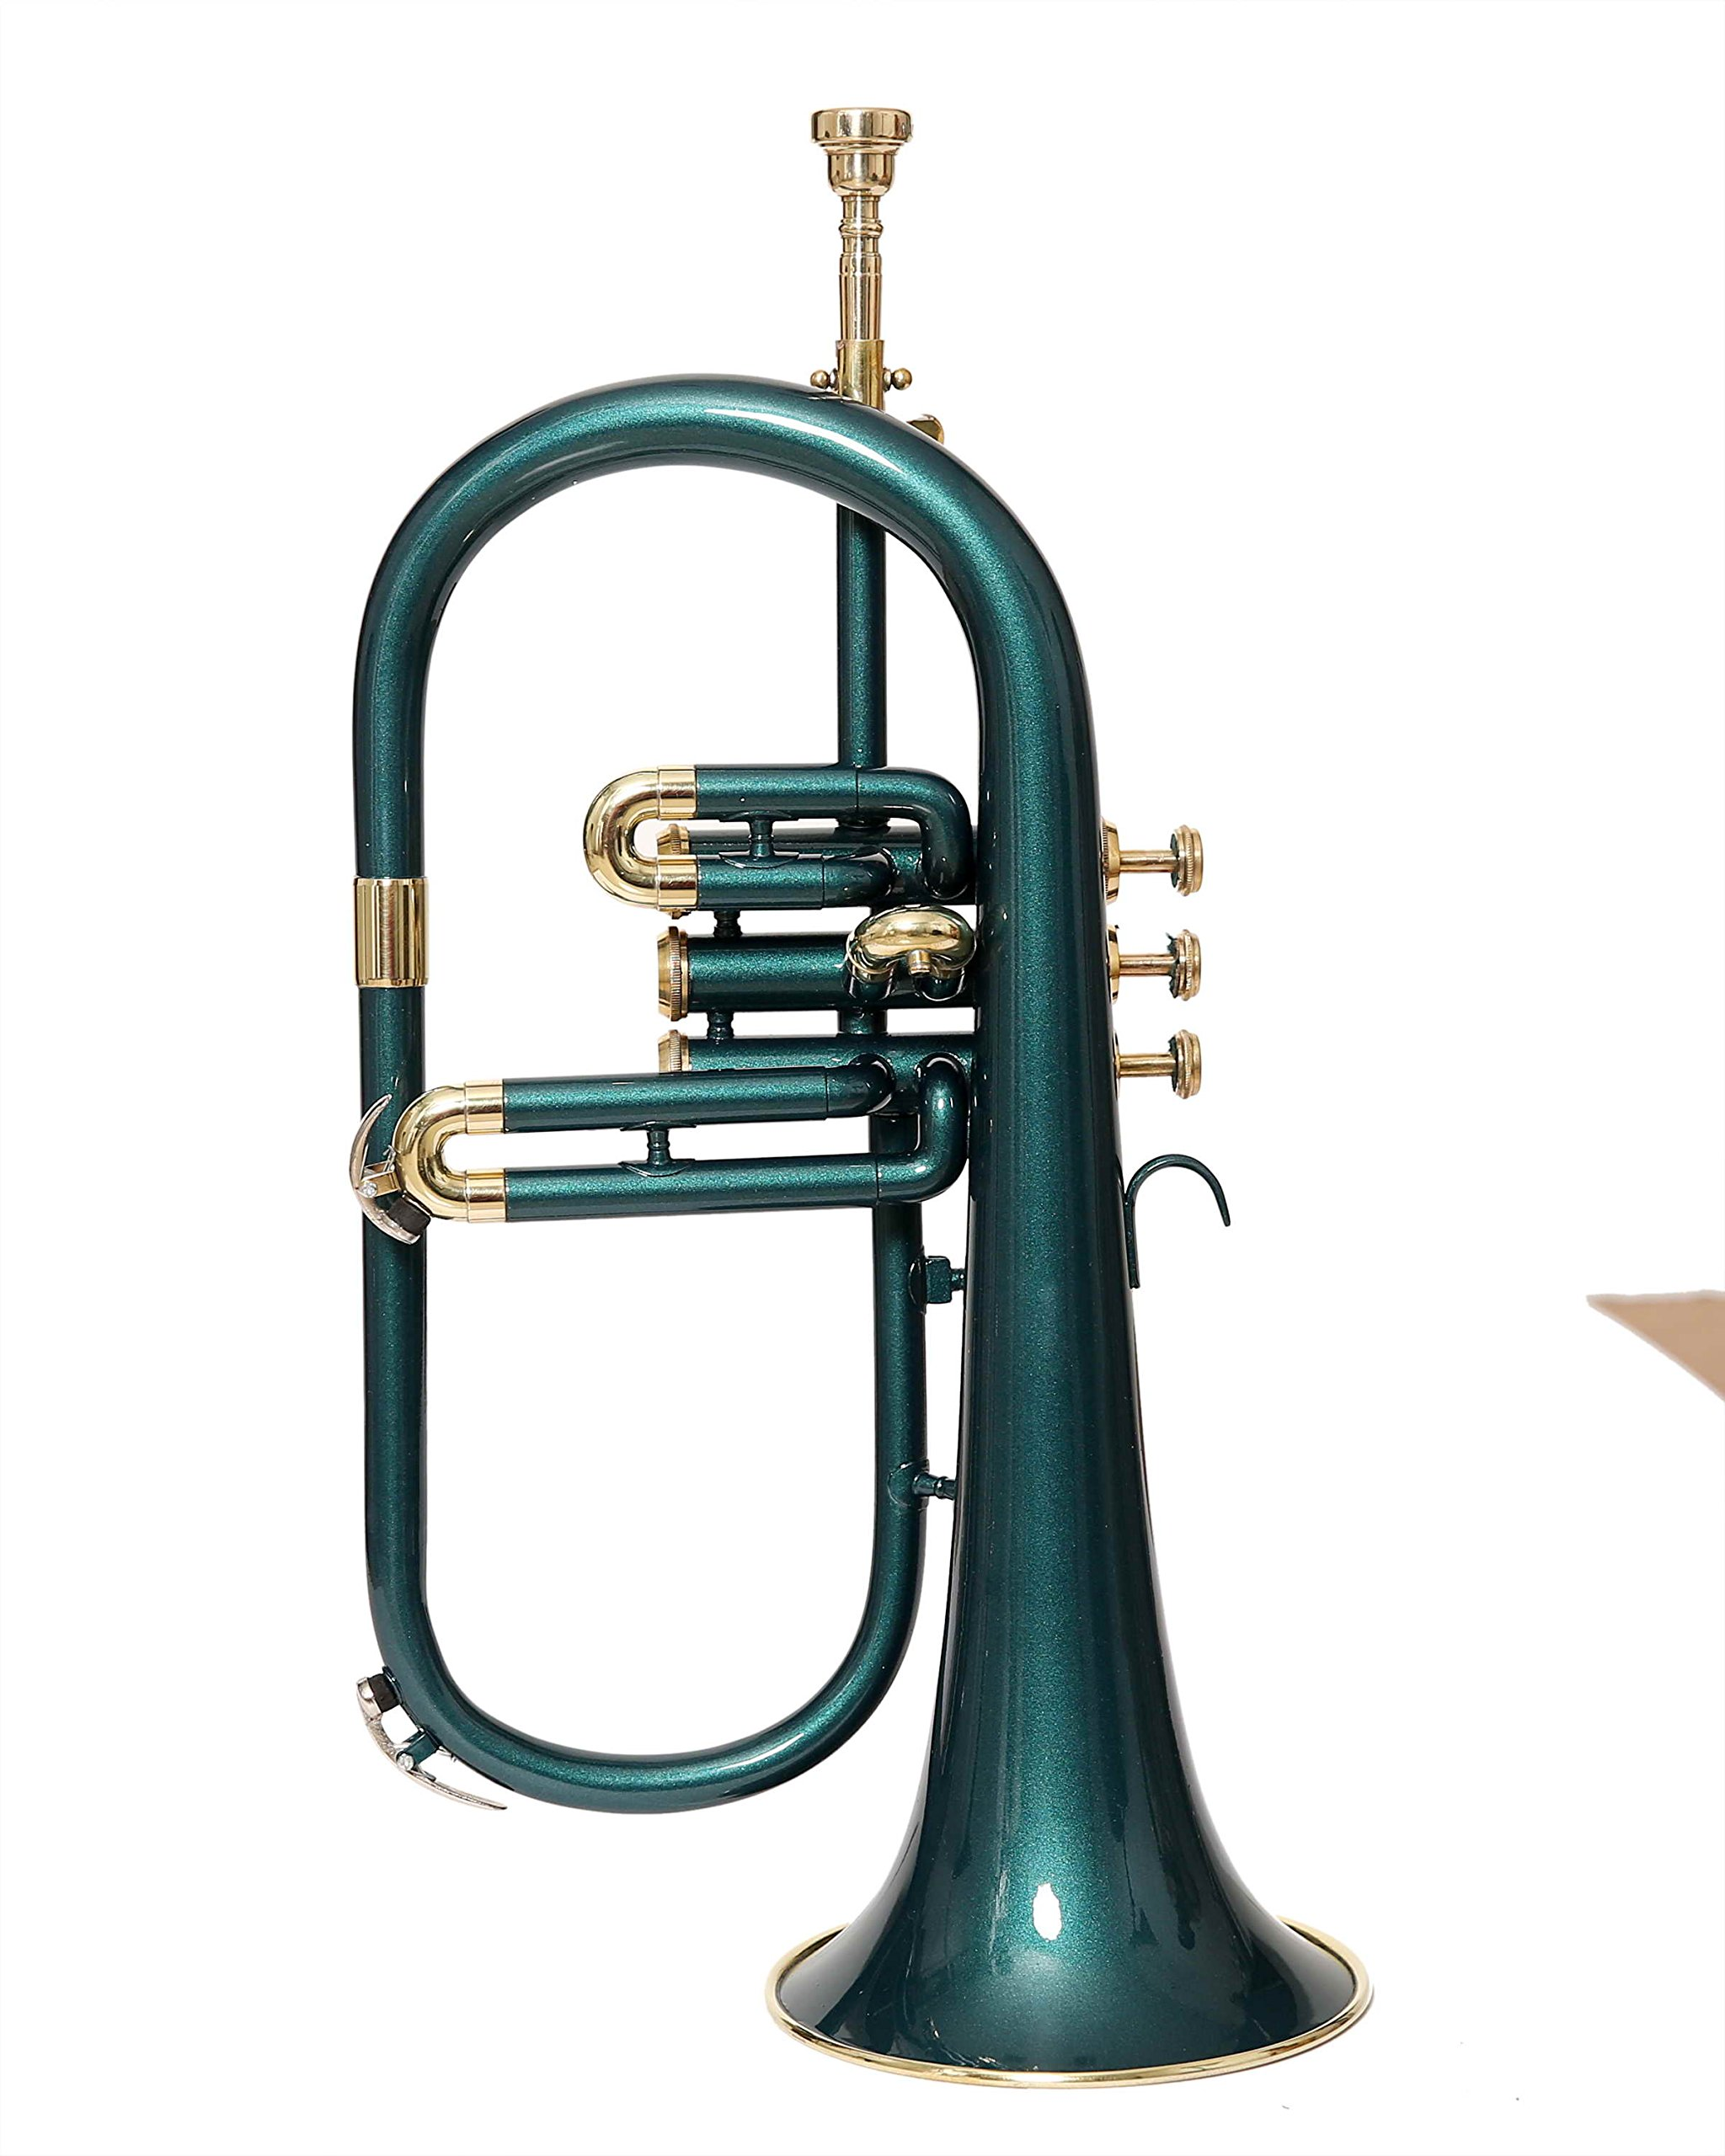 Moonflag eMusicals Flugel Horn Bb Pitch With Free Hard Case And Mouthpiece, Green Lacquered by NASIR ALI (Image #5)